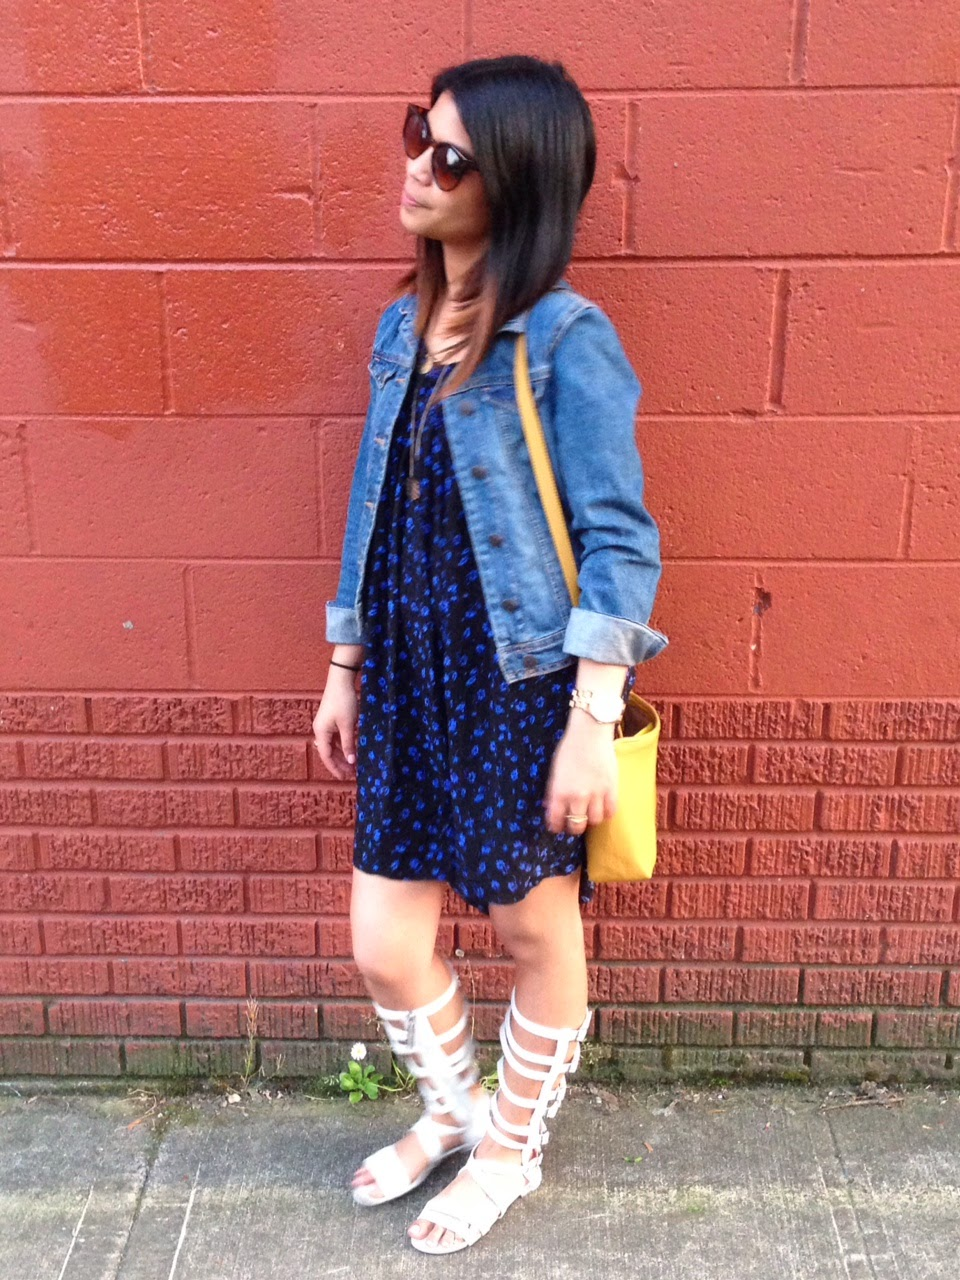 portland fashion blogger, outfit of the day, forever 21, floral shift dress, gladiator flat sandals